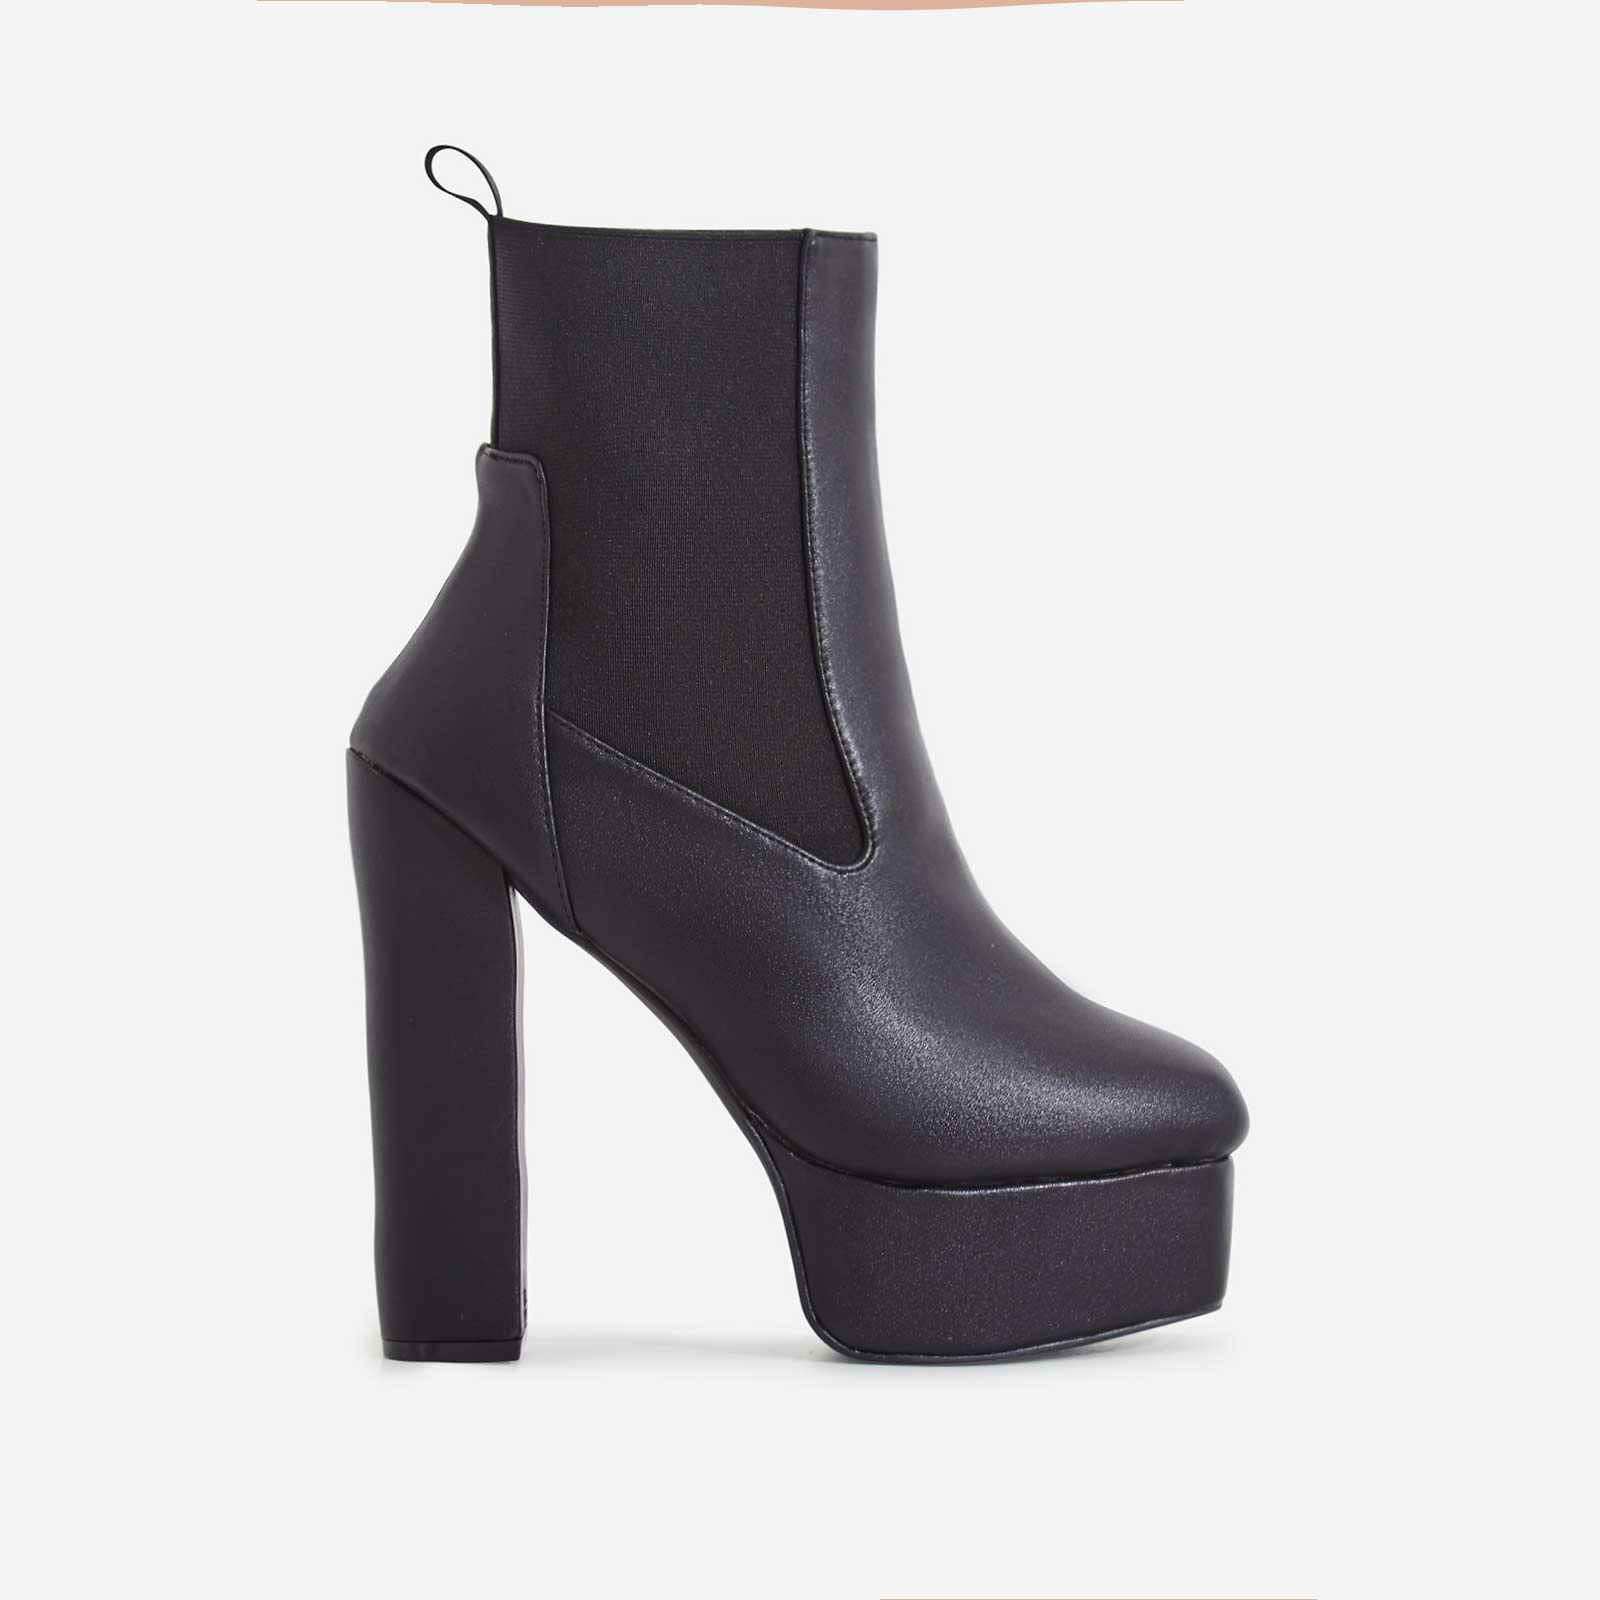 Harleen Square Toe Platform Ankle Biker Boot In Black Faux Leather